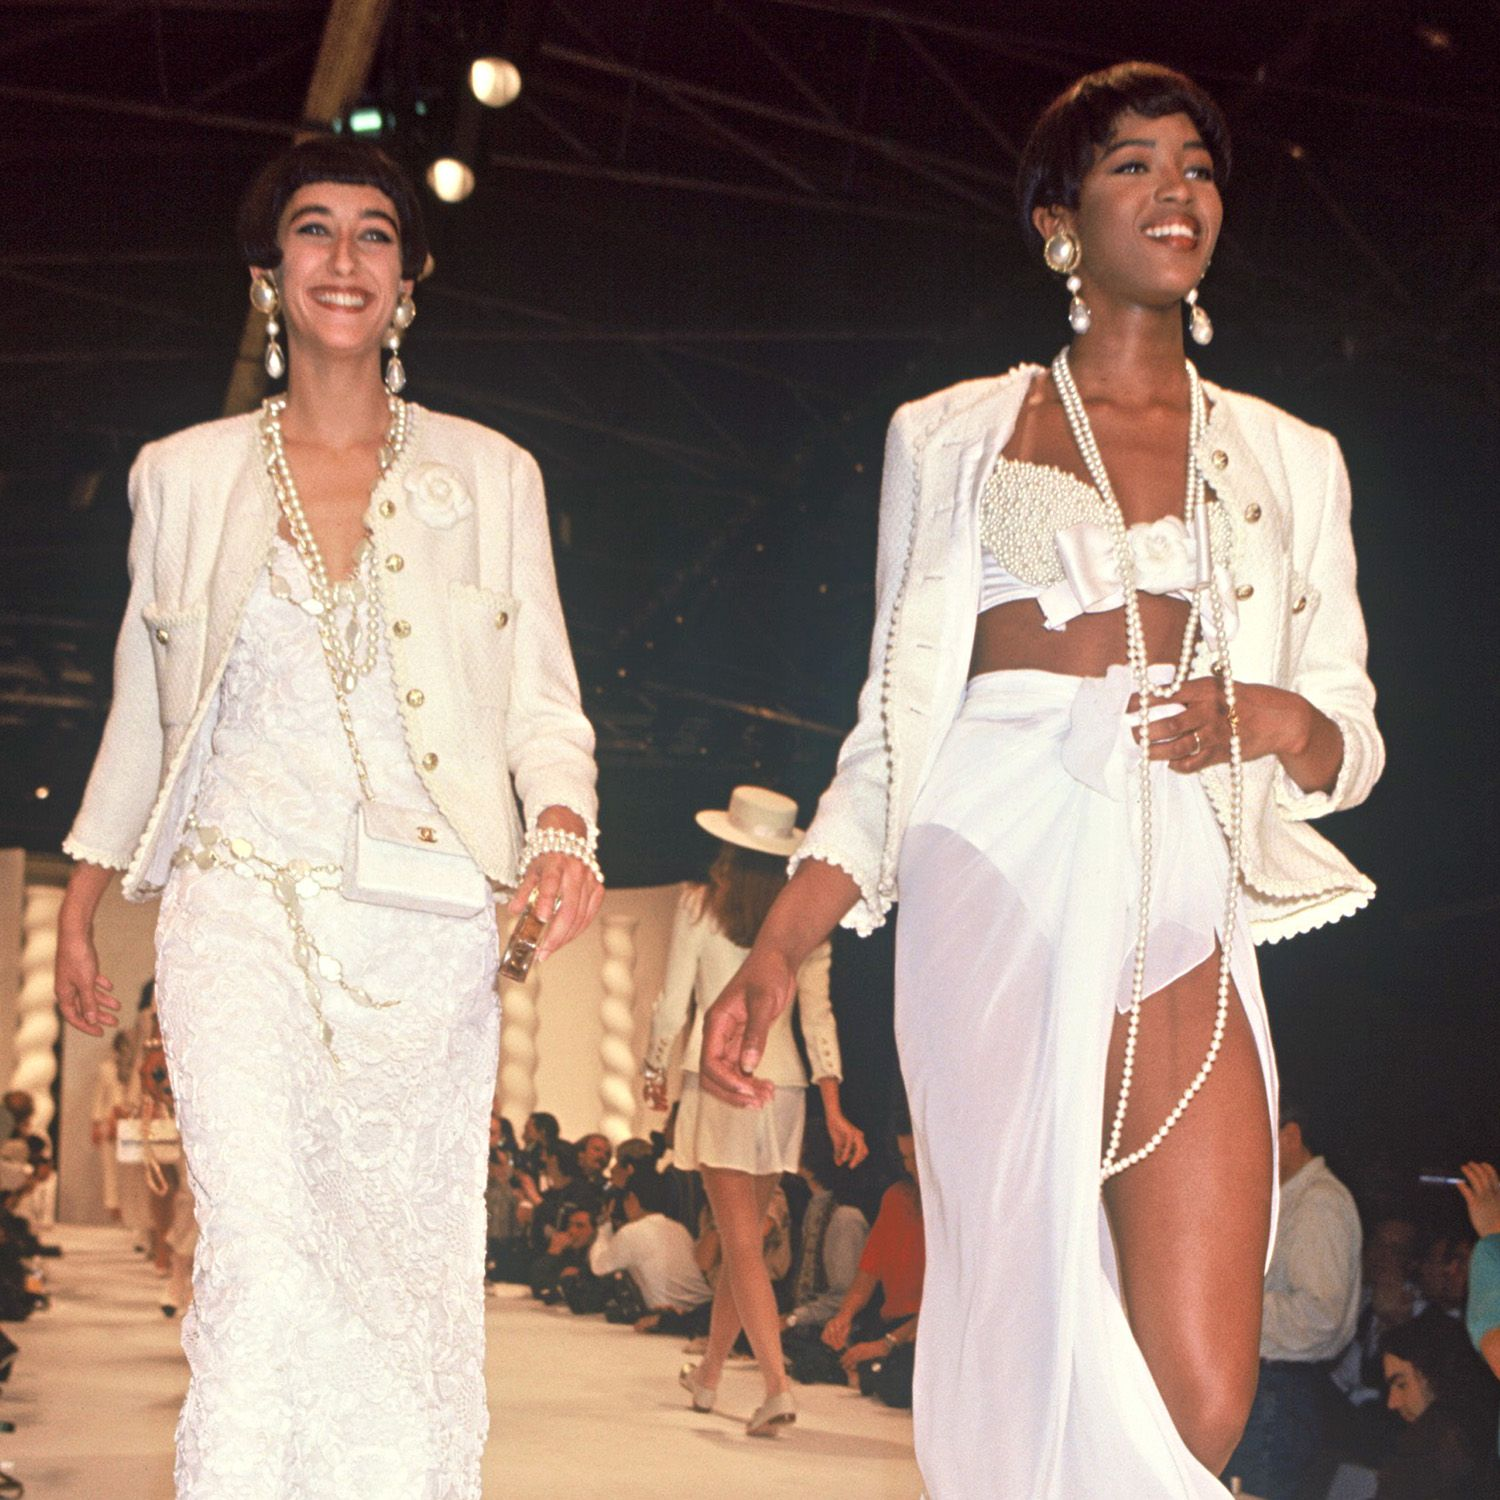 ARCHIVES - NAOMI CAMPBELL - DEFILE DE MODE CHANEL COLLECTION PRET A PORTER PRINTEMPS ETE 1990 A PARIS&#xA&#x3B;&#xA&#x3B;&#xA&#x3B;